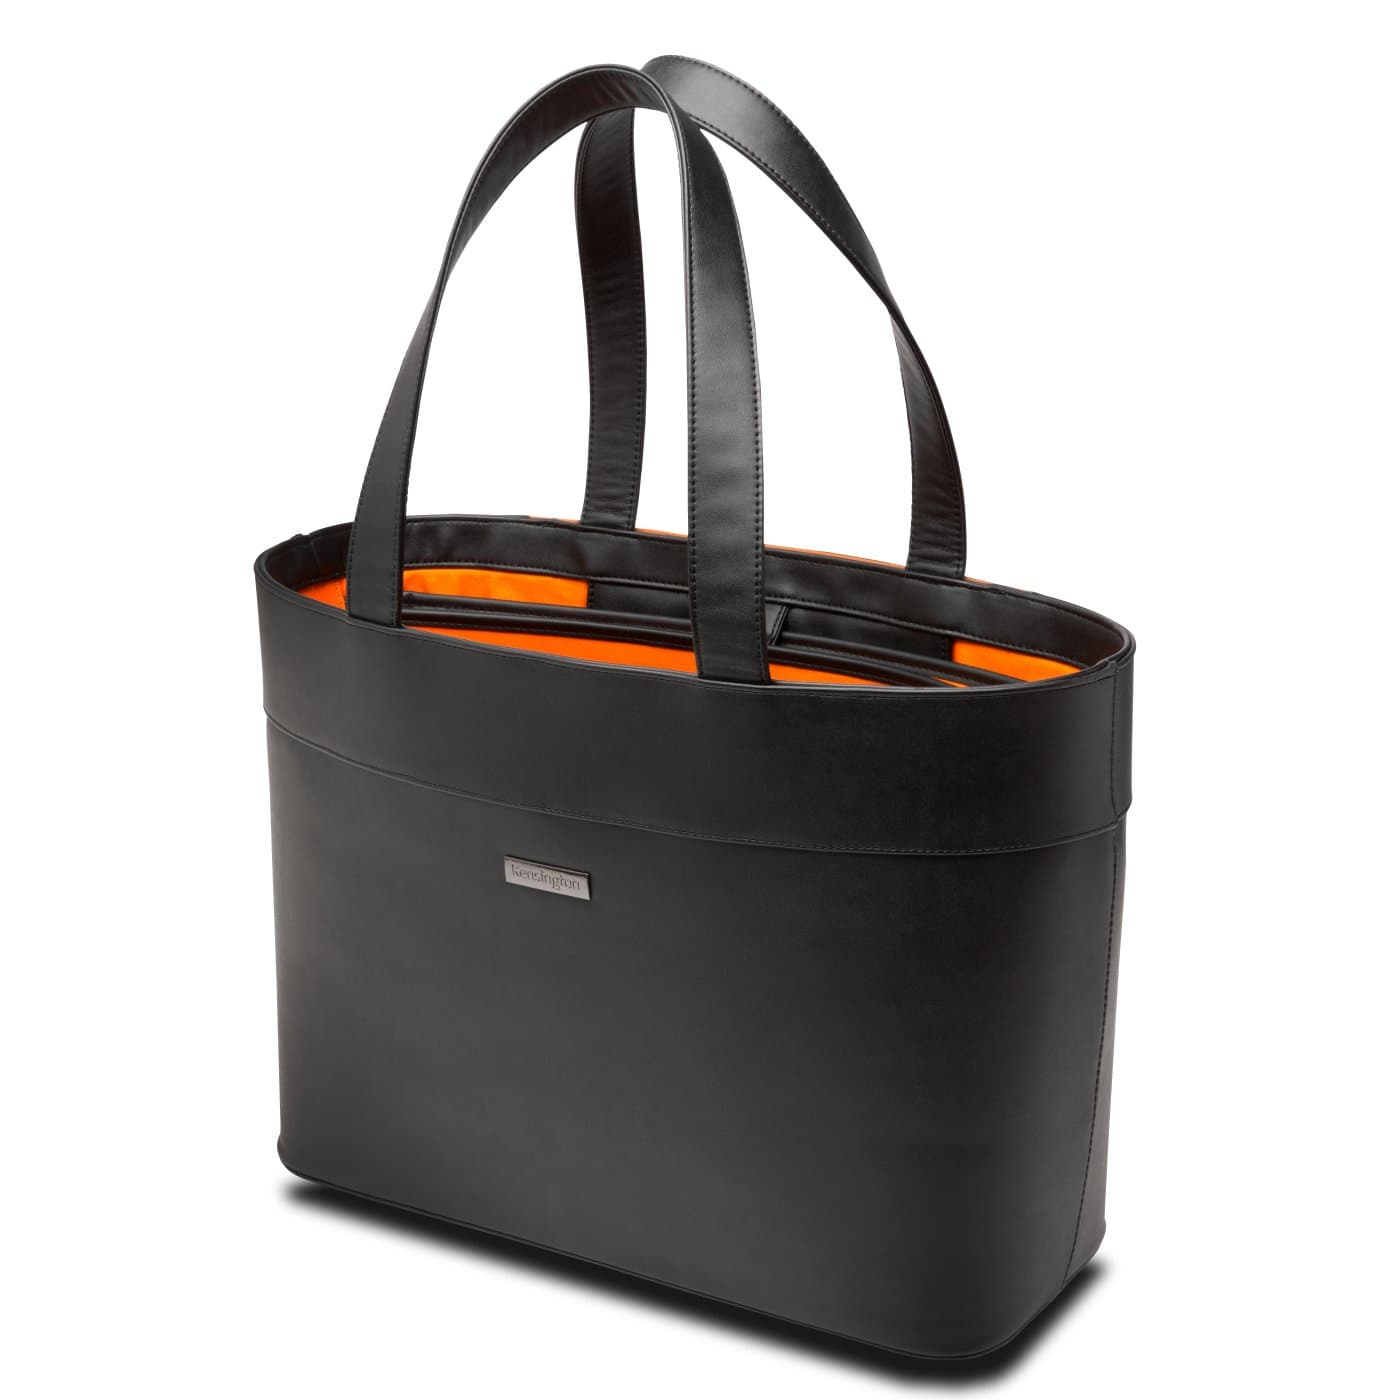 Kensington - Products - Laptop Bags - Briefcases   Totes - Jacqueline ... 16ffe9b590